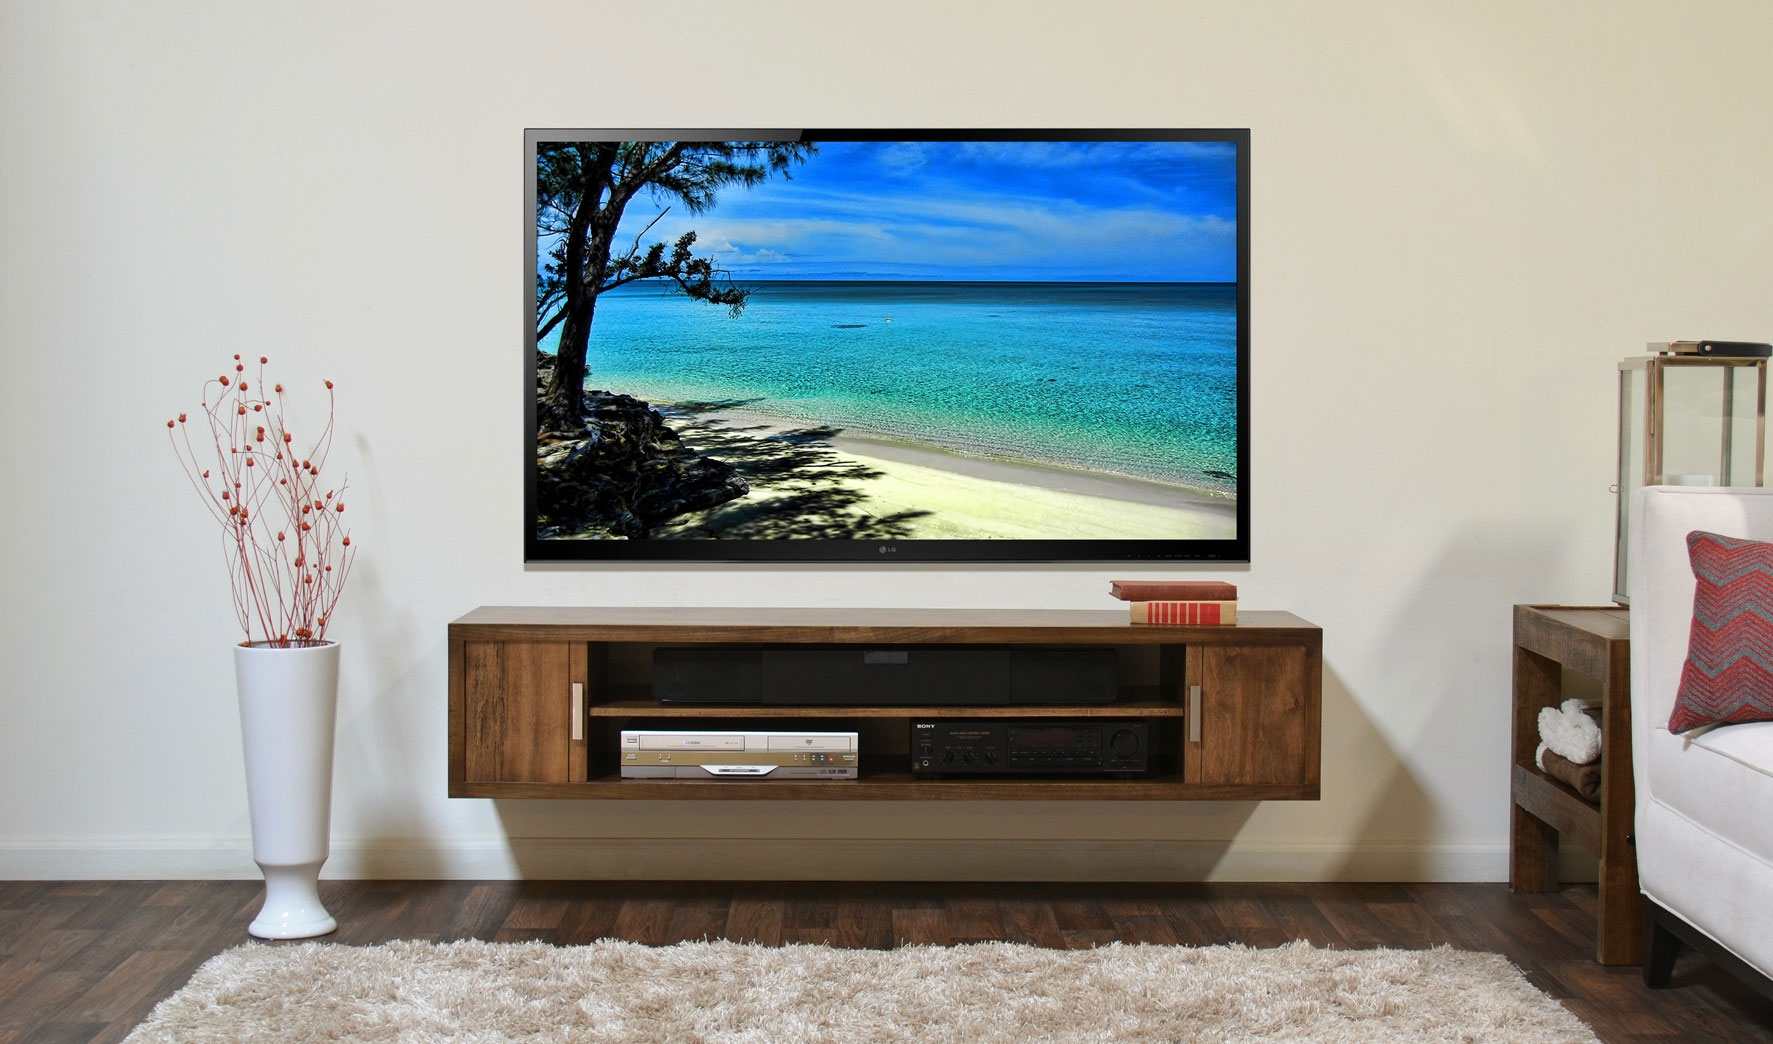 tv-wall-mounting-installation-western-sydney.jpg